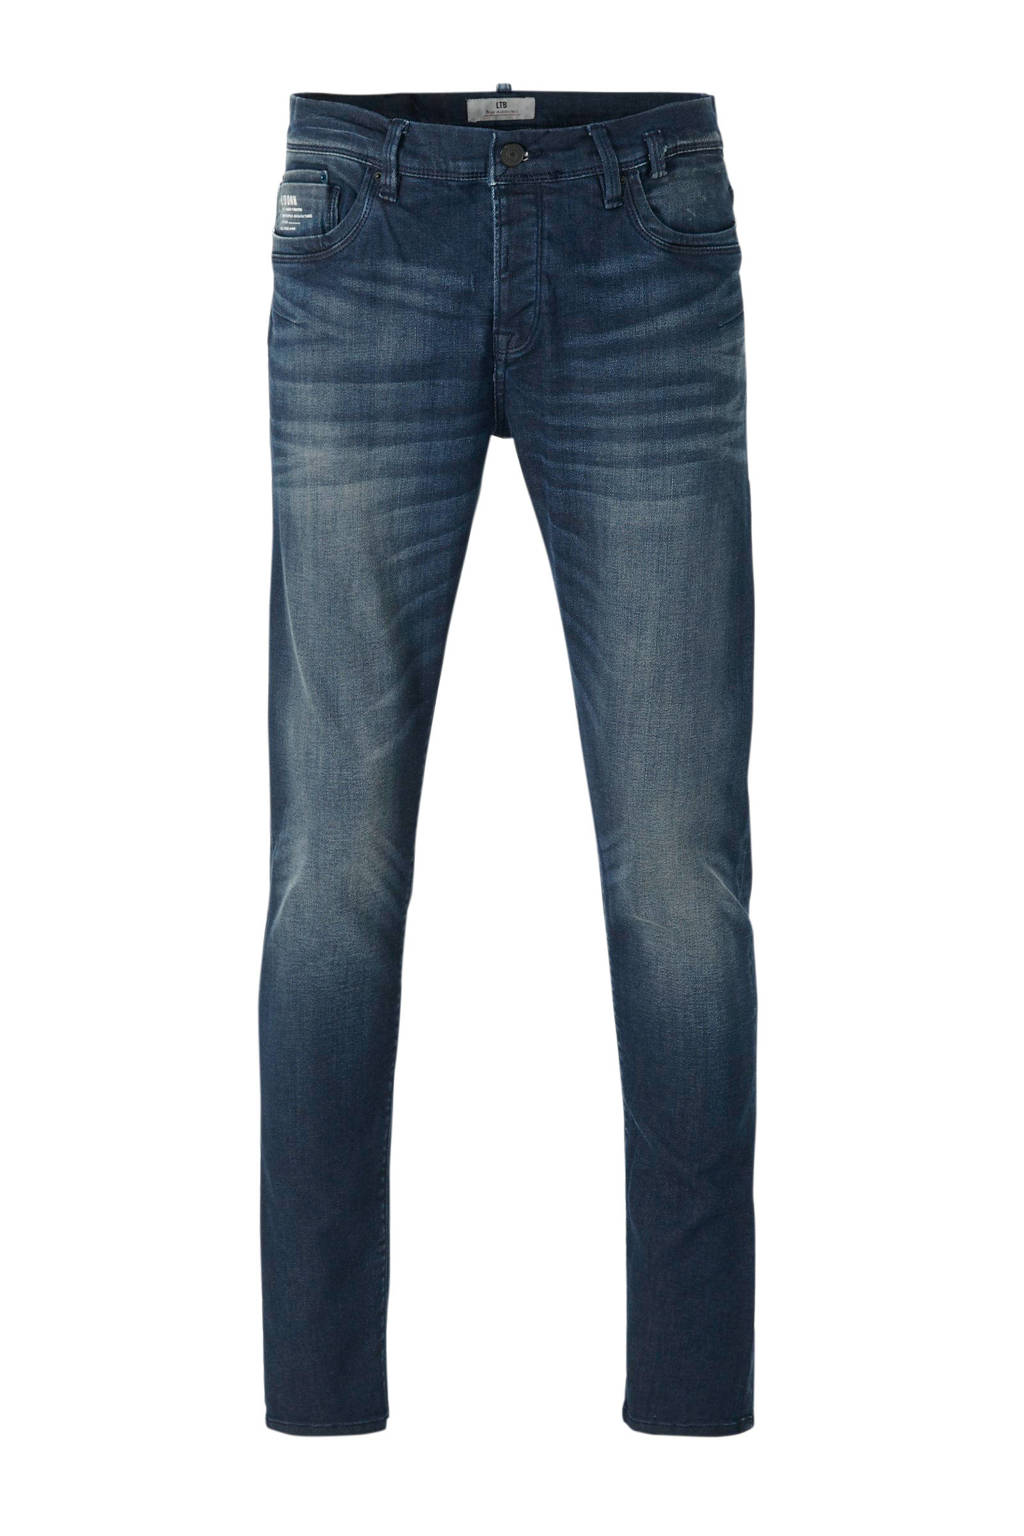 LTB tapered fit jeans Servando XD, 51536 Alroy